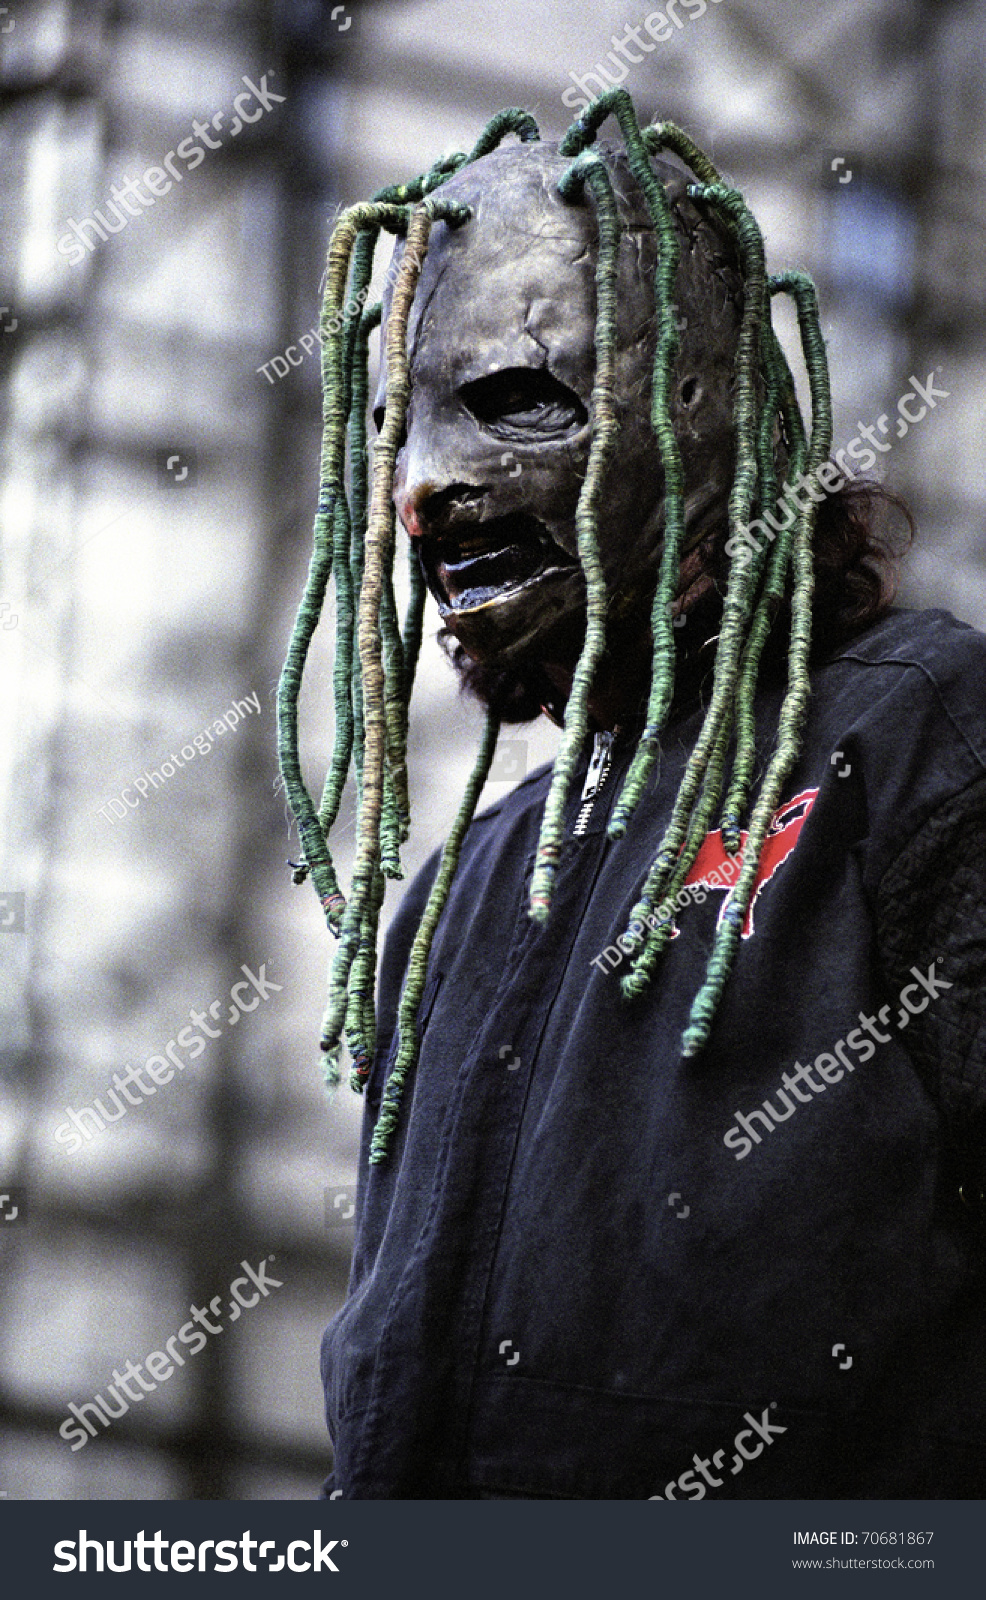 Band slipknot performs live in concert june 22 2001 at mile high